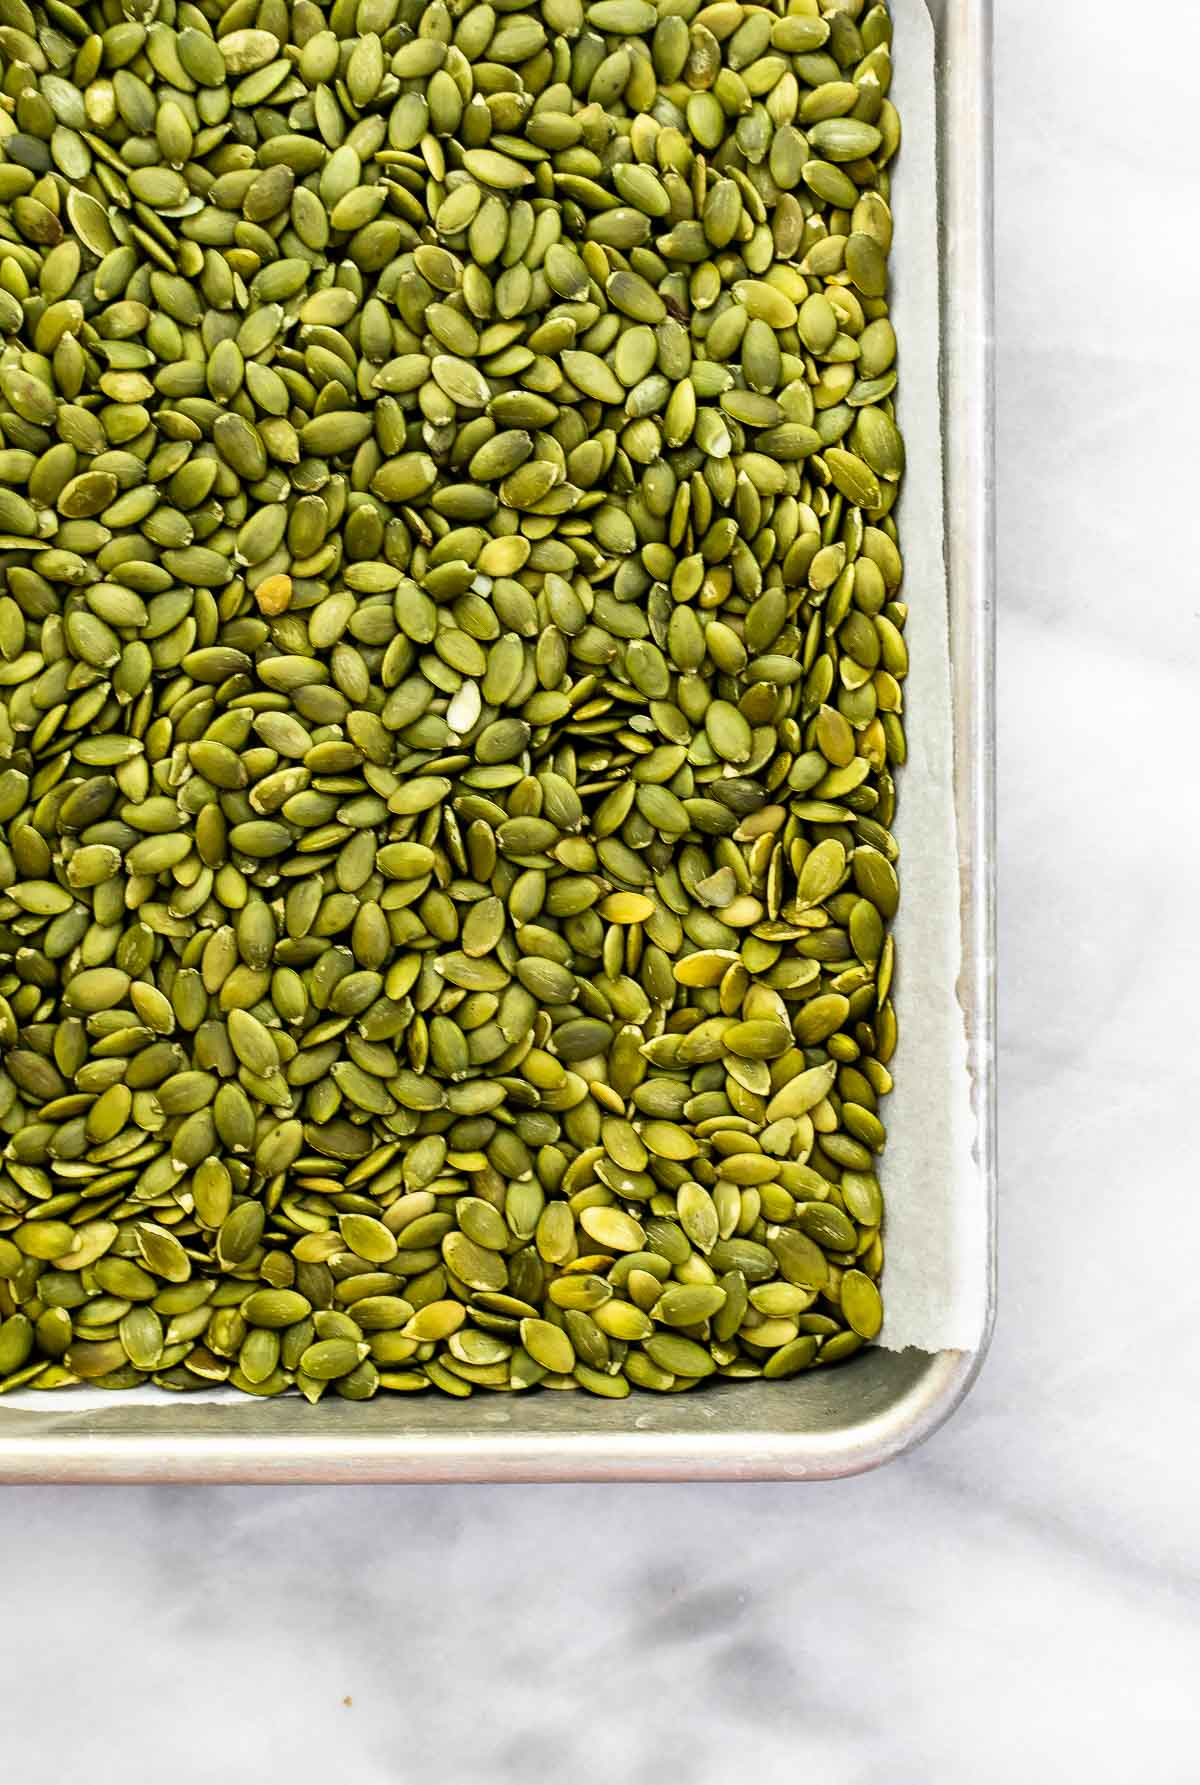 Pumpkin seeds on a baking tray.